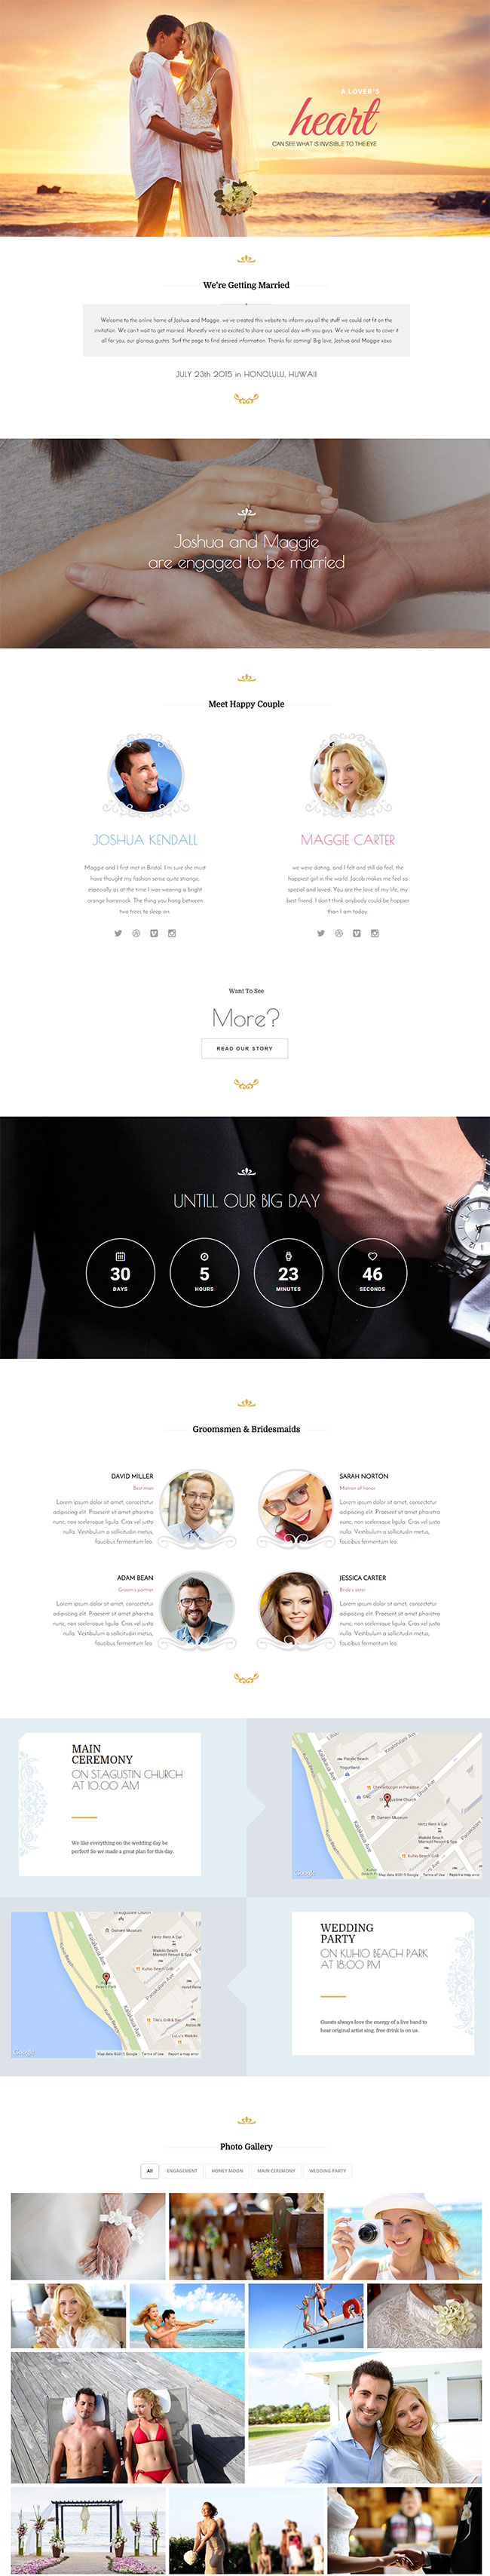 Wedding-Suite-WordPress-Wedding-Theme